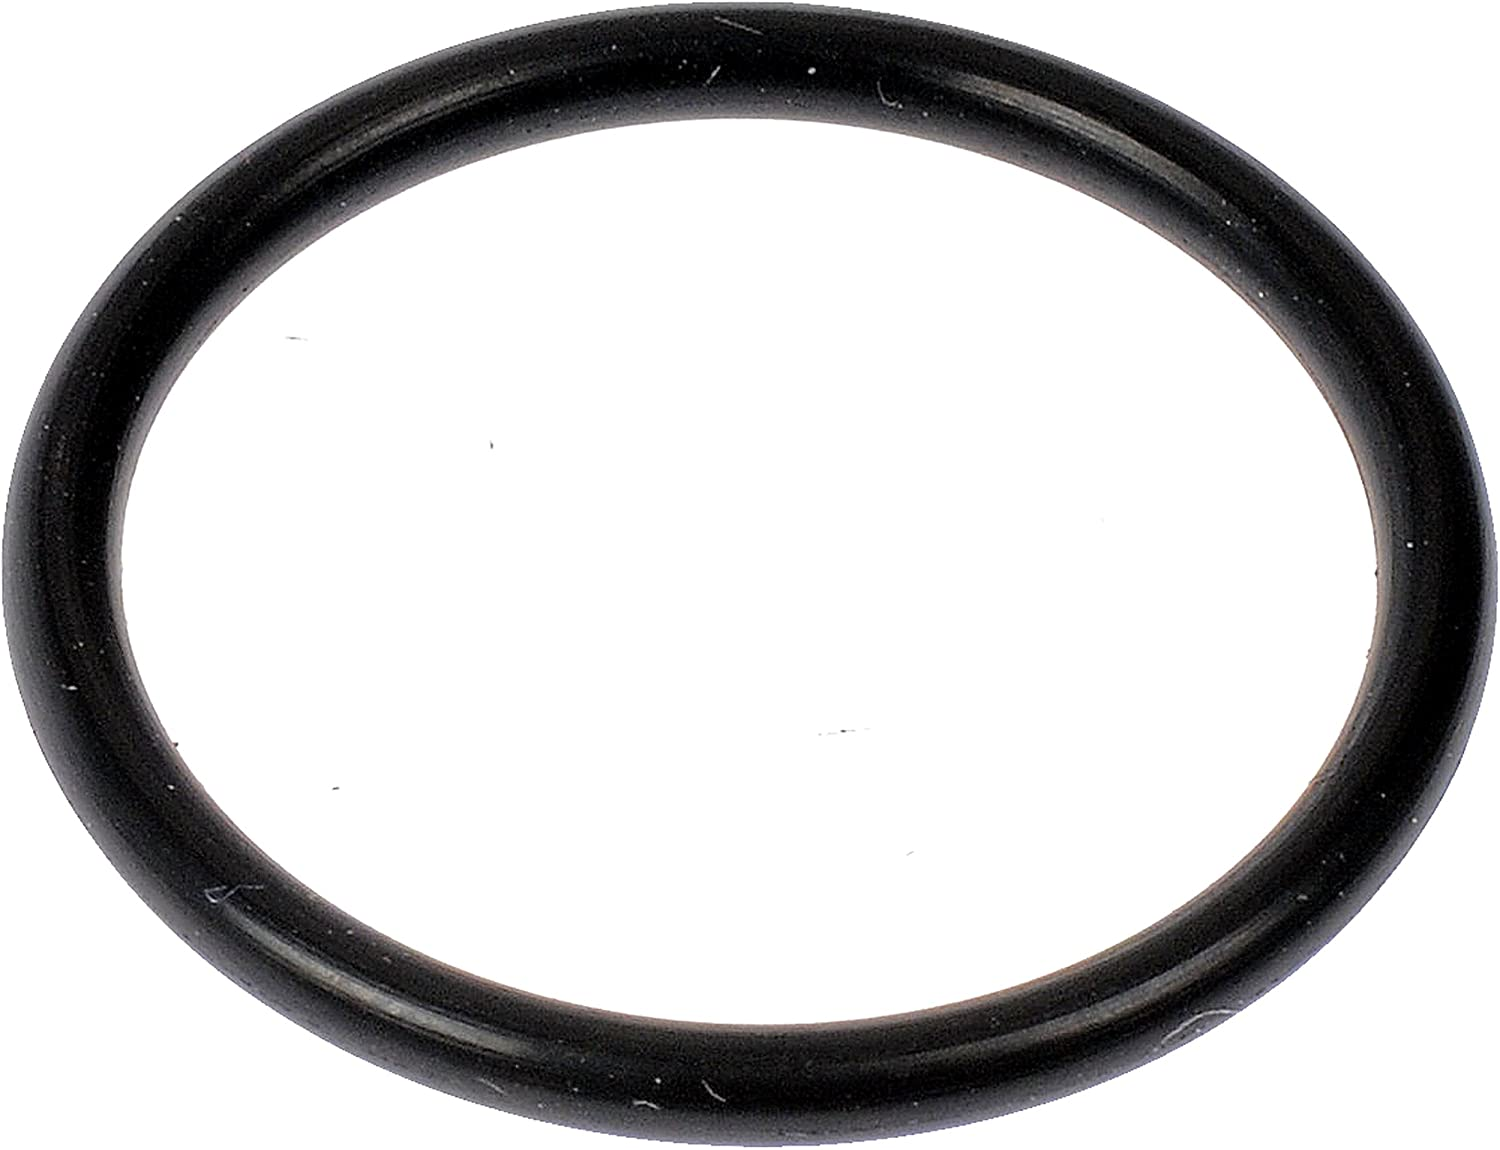 Dorman 65426 Rubber Oil Drain Plug Gasket, Pack of 3